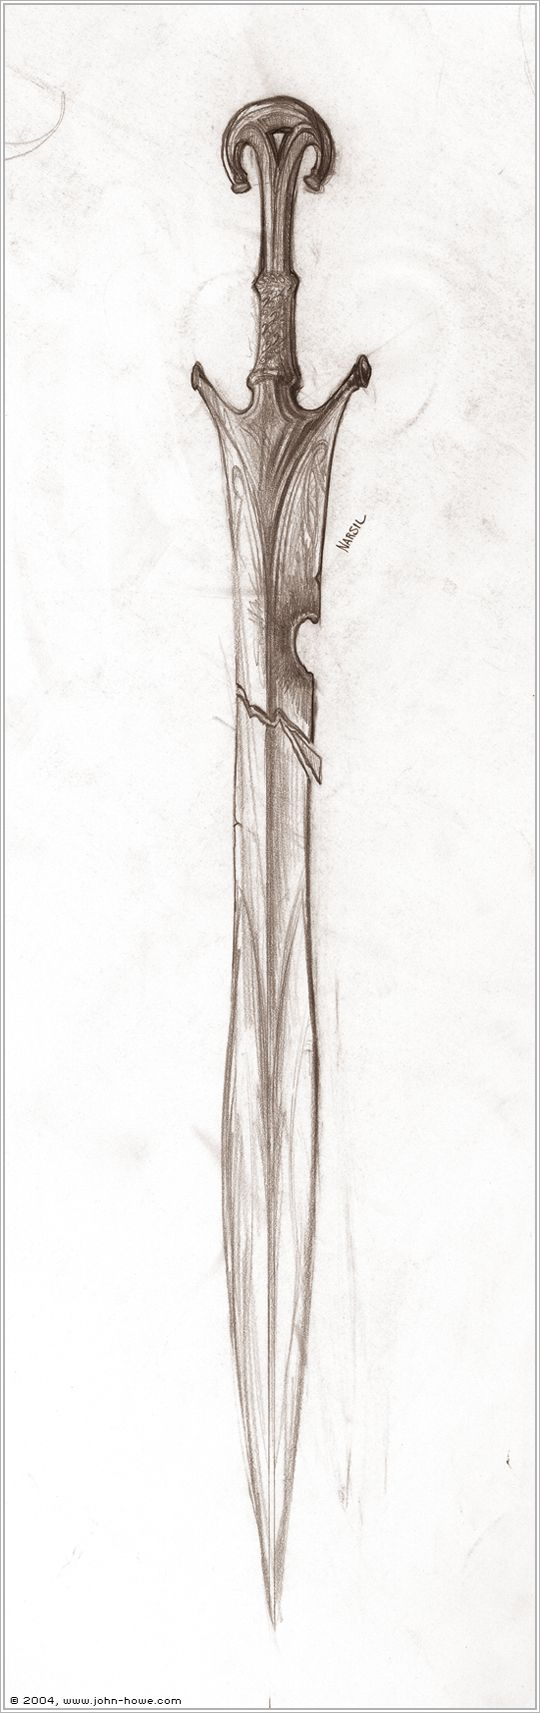 A design for Narsil inspired by more ancient models. This sketch was done about halfway through the design process